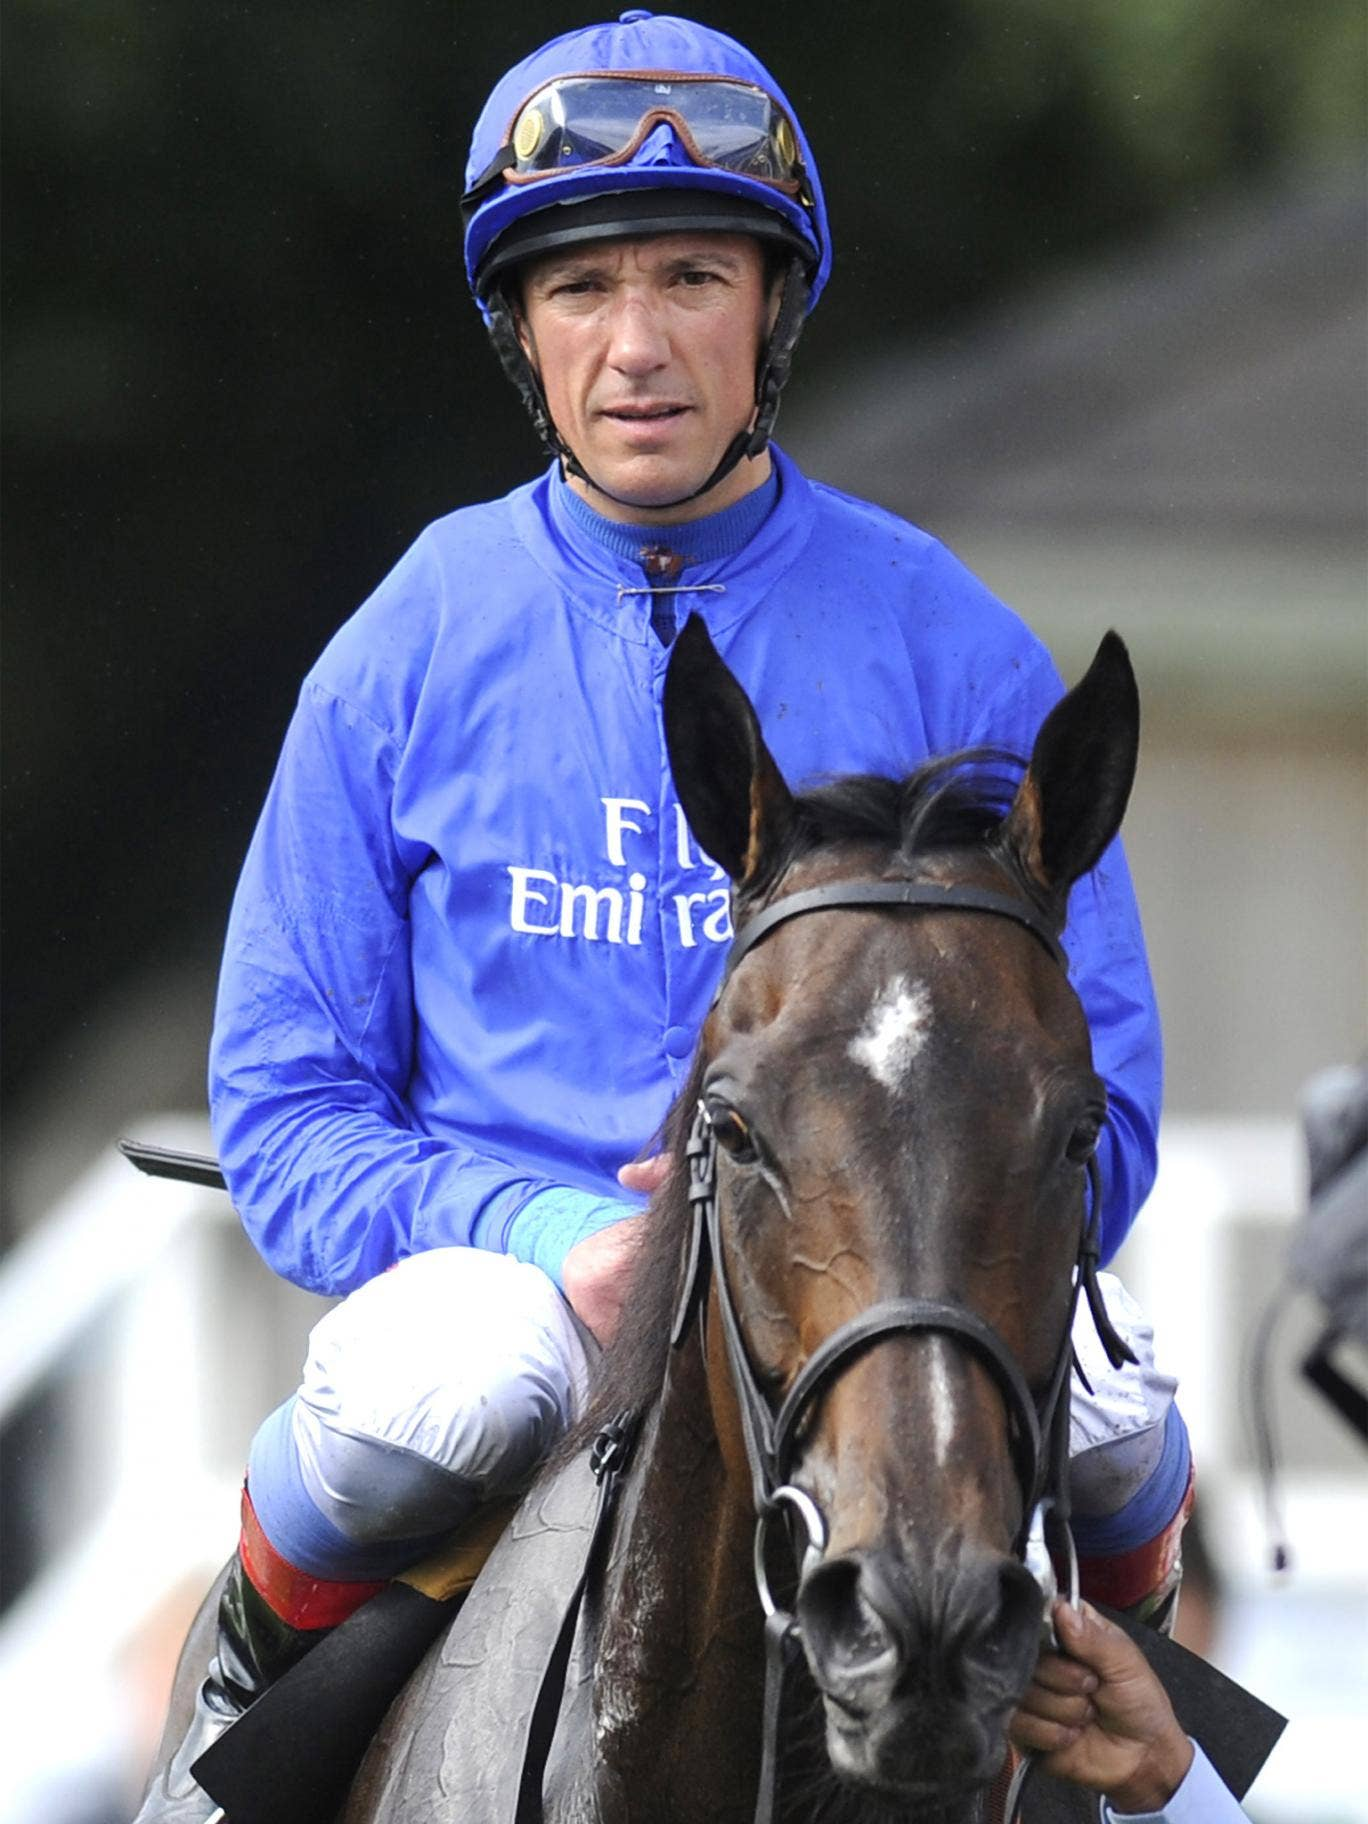 Frankie Dettori said he was depressed and had 'a moment of weakness'